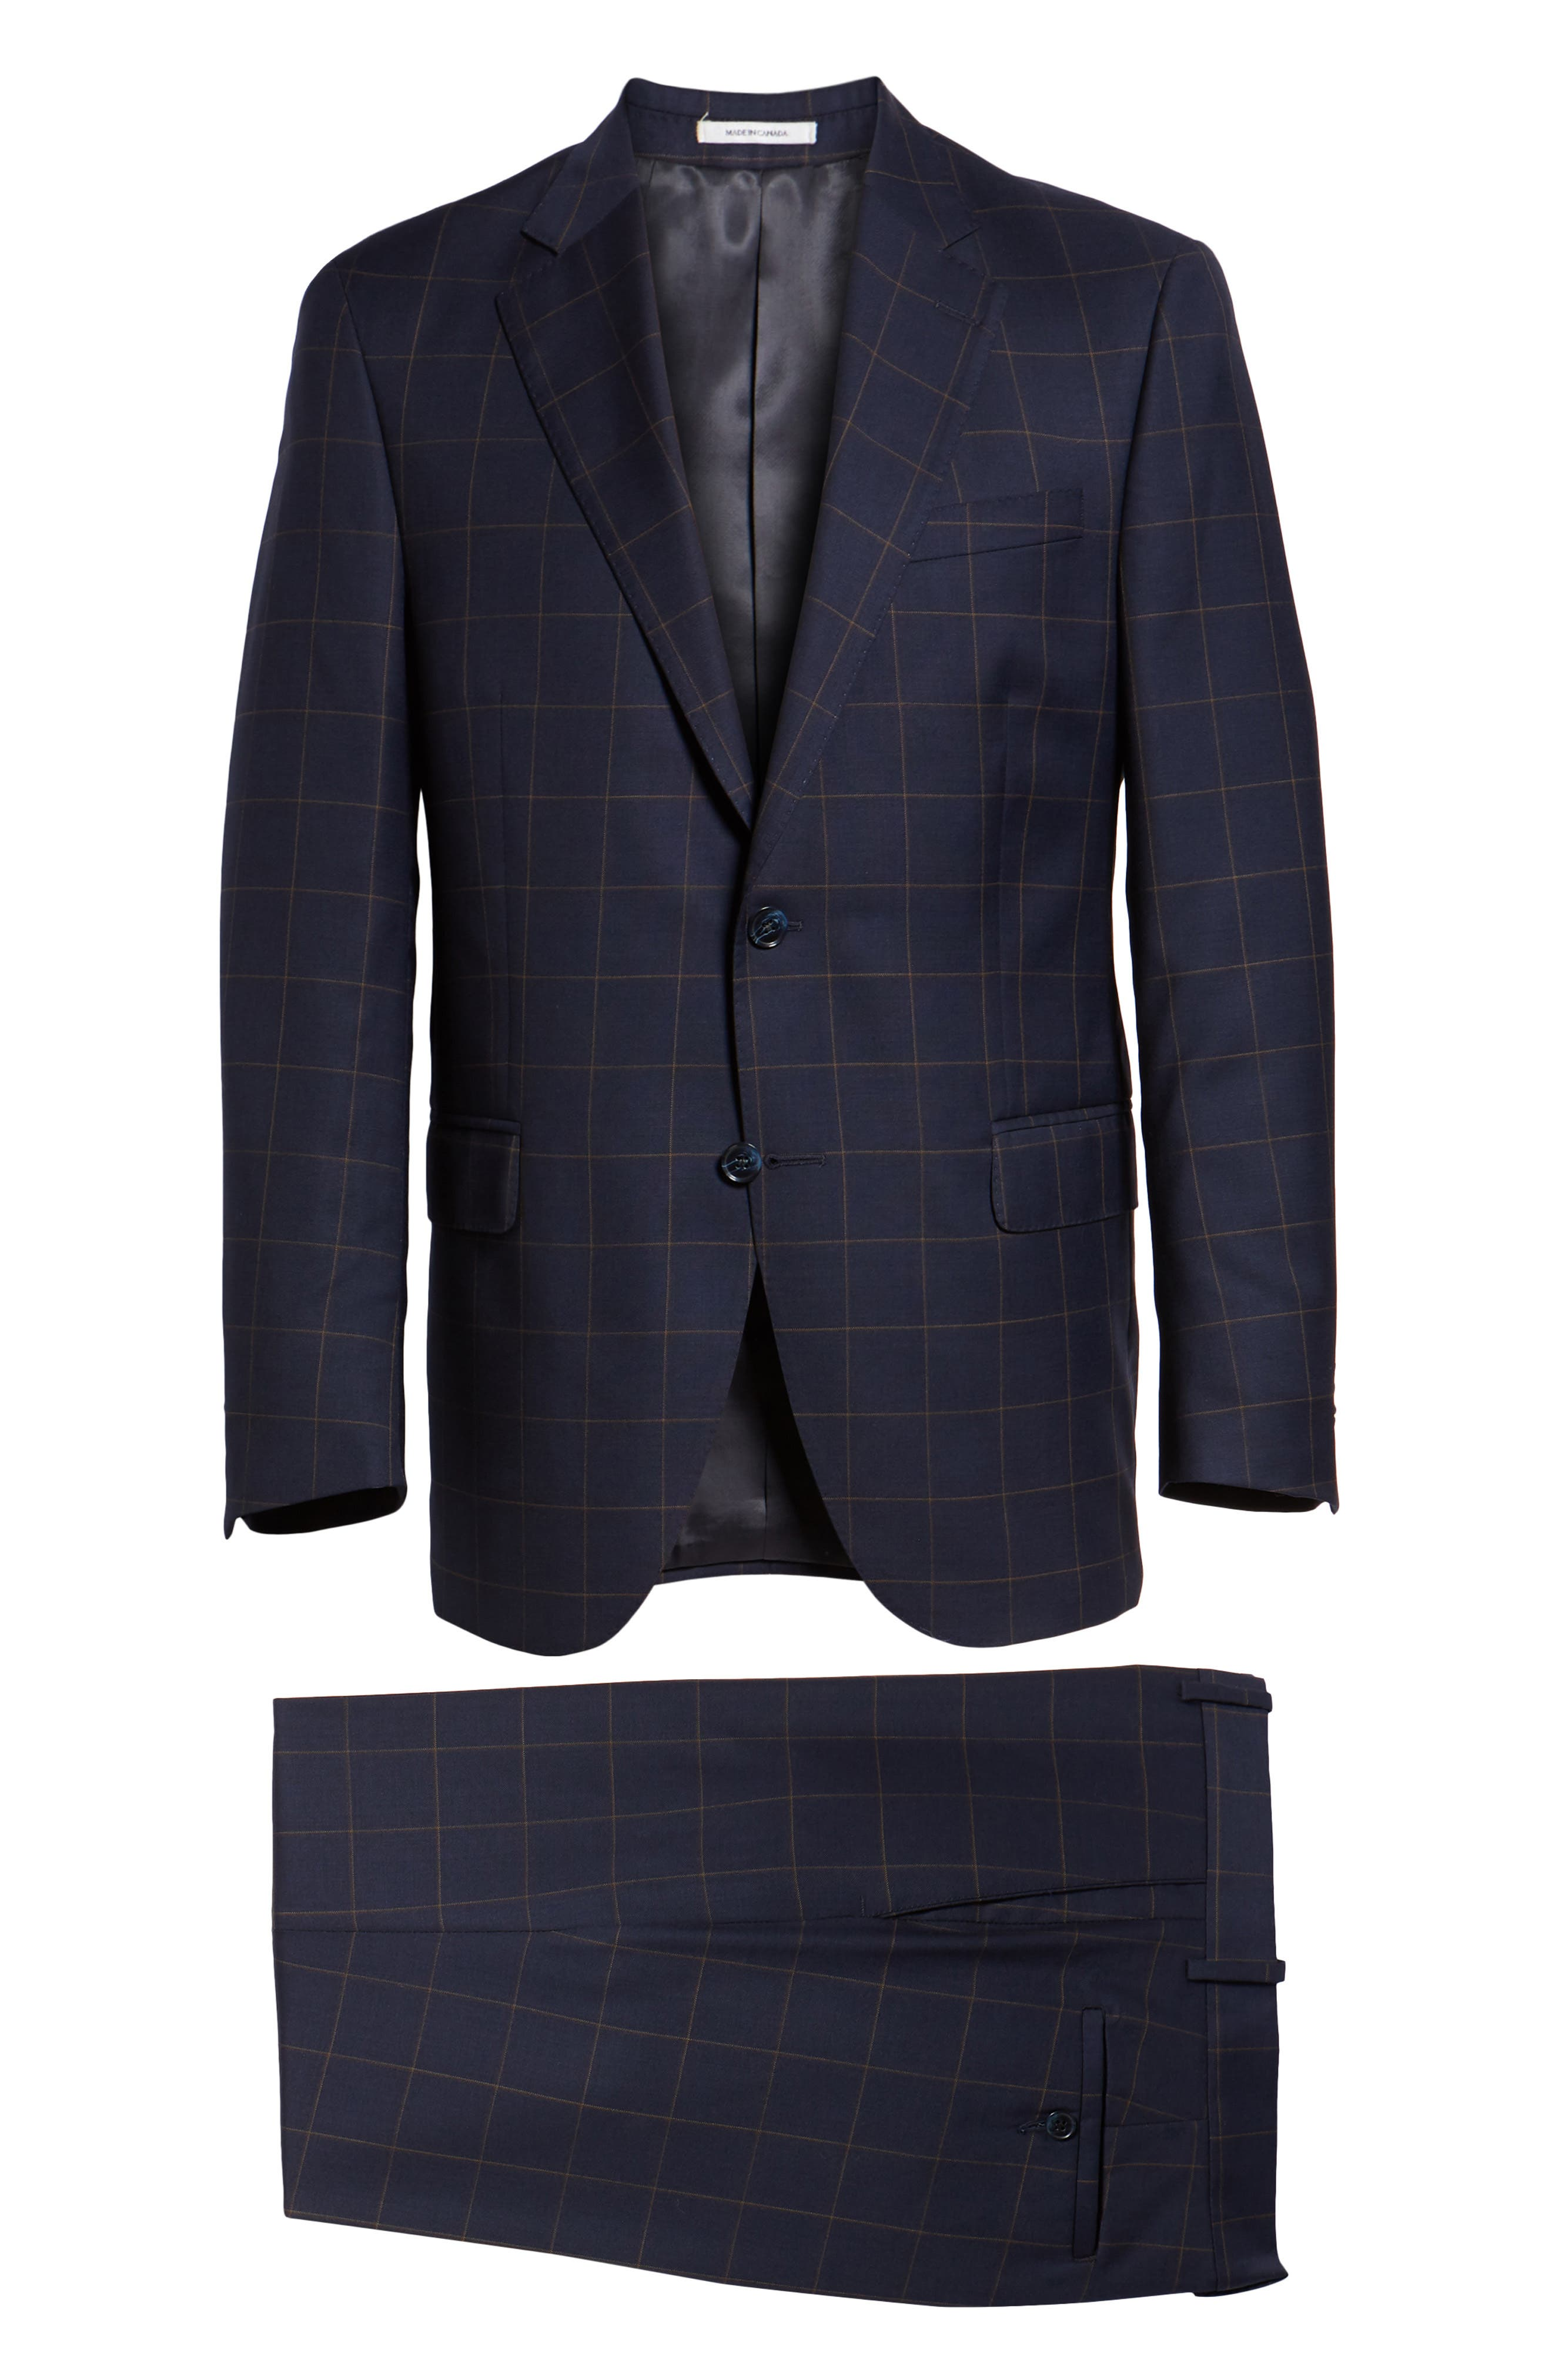 PETER MILLAR,                             Flynn Classic Fit Windowpane Wool Suit,                             Alternate thumbnail 8, color,                             NAVY